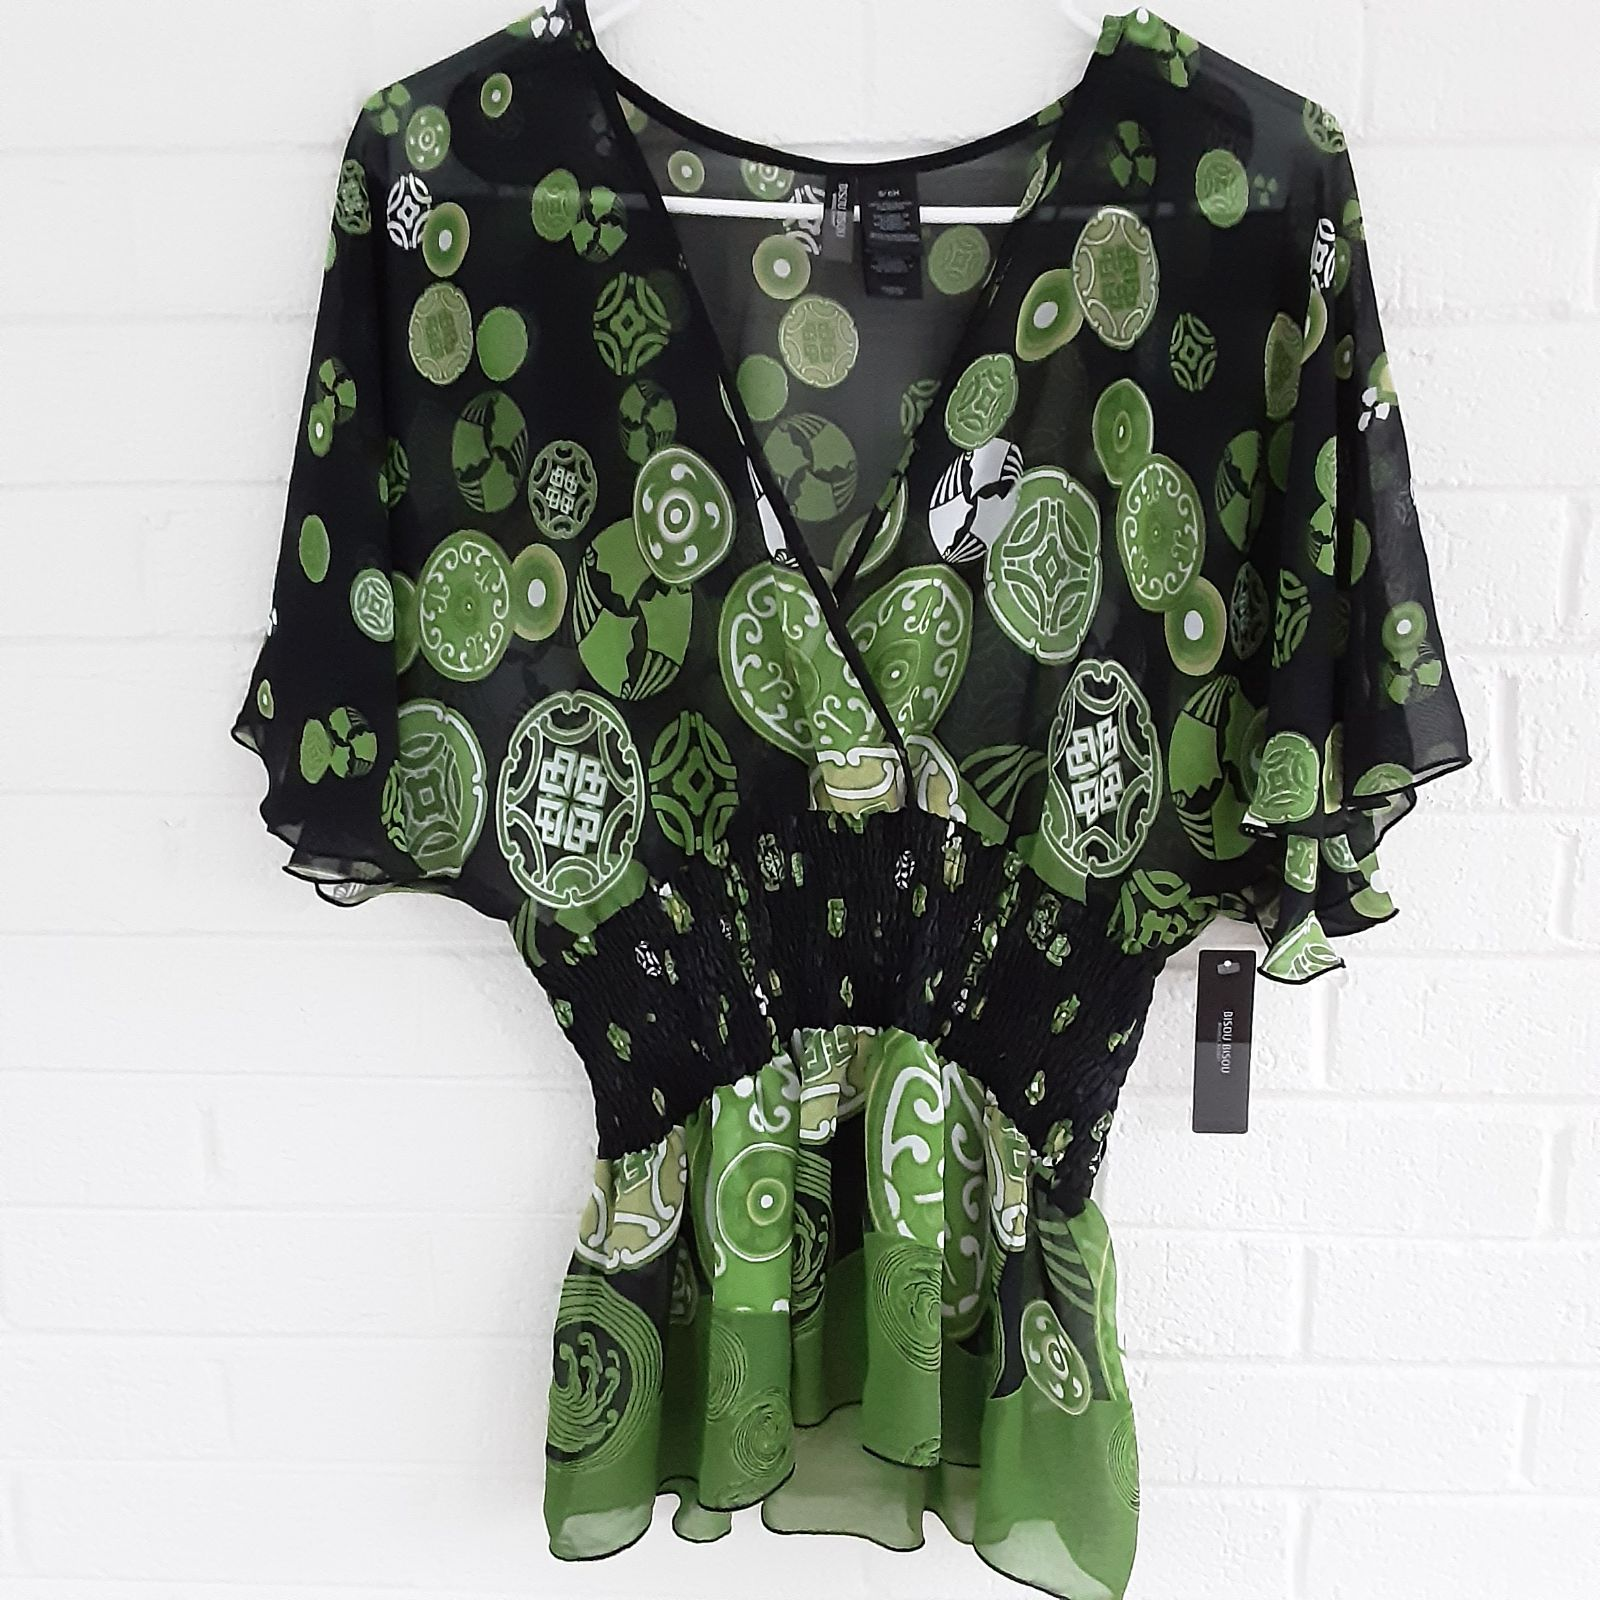 Bisou Bisou Top Size Small New With Tags